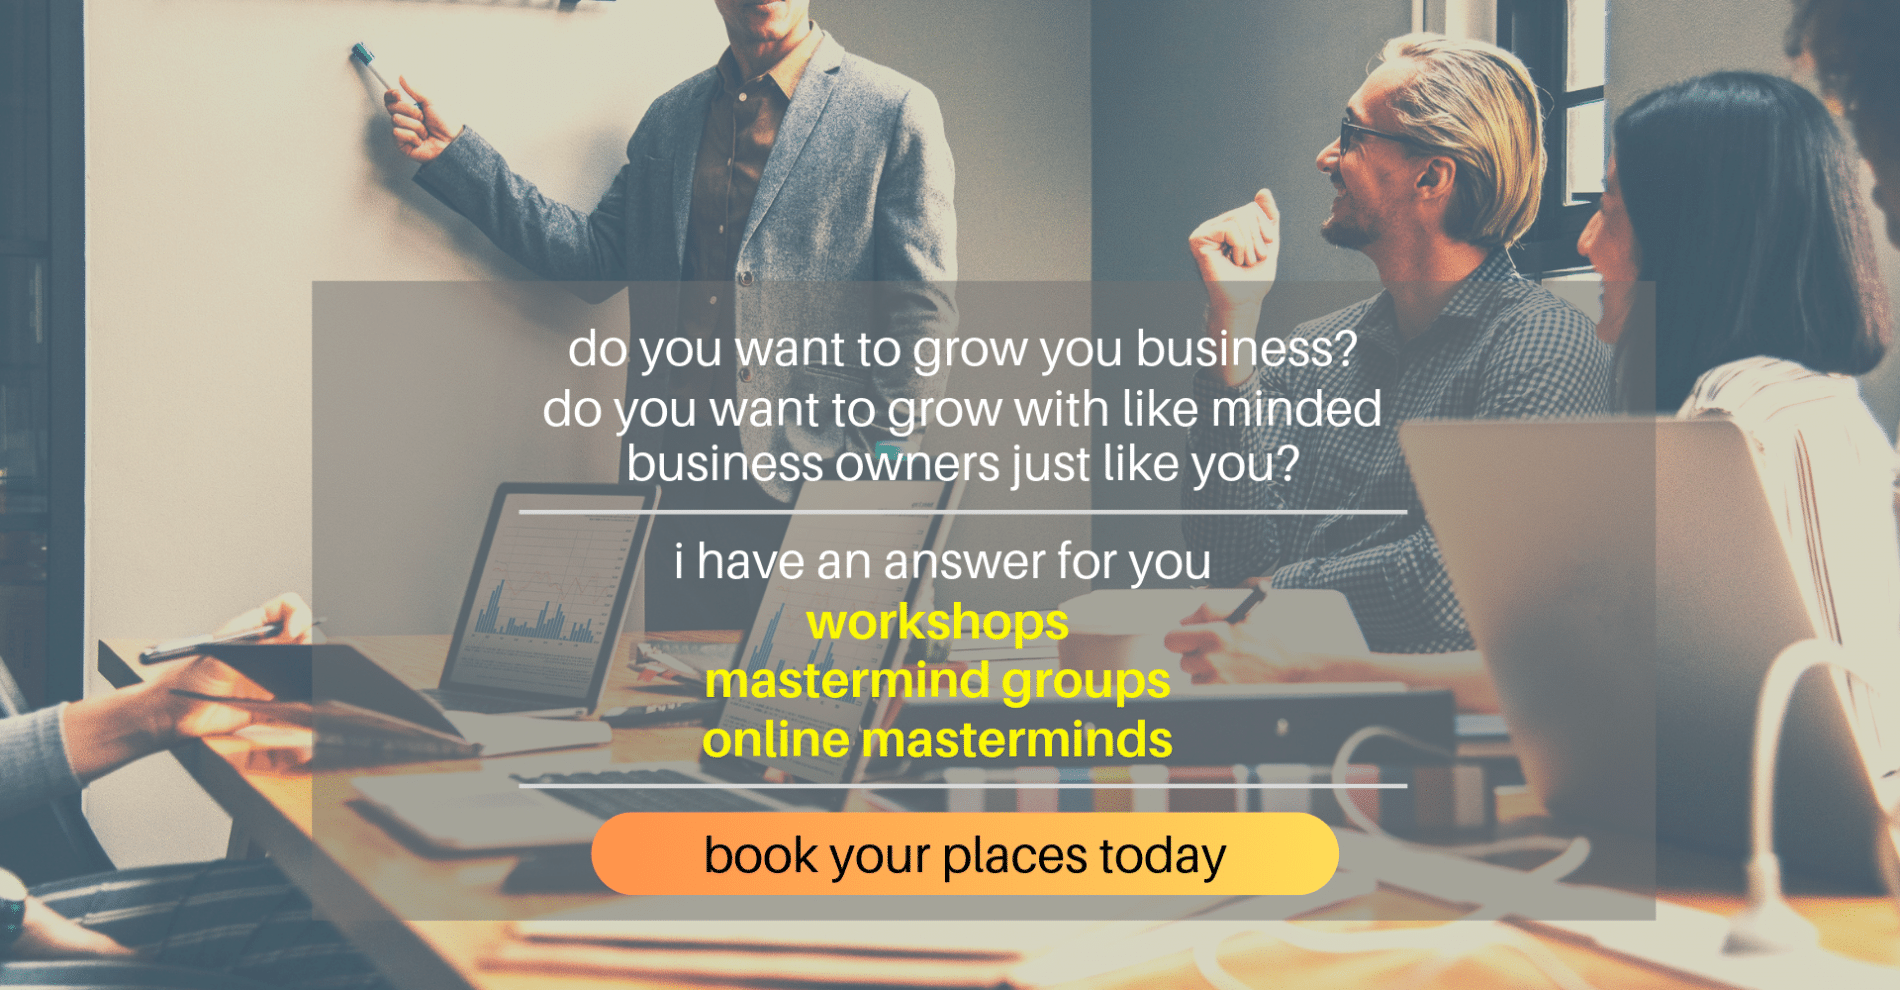 Marc Ford business coach small business events and mastermind groups business coaching Leicester